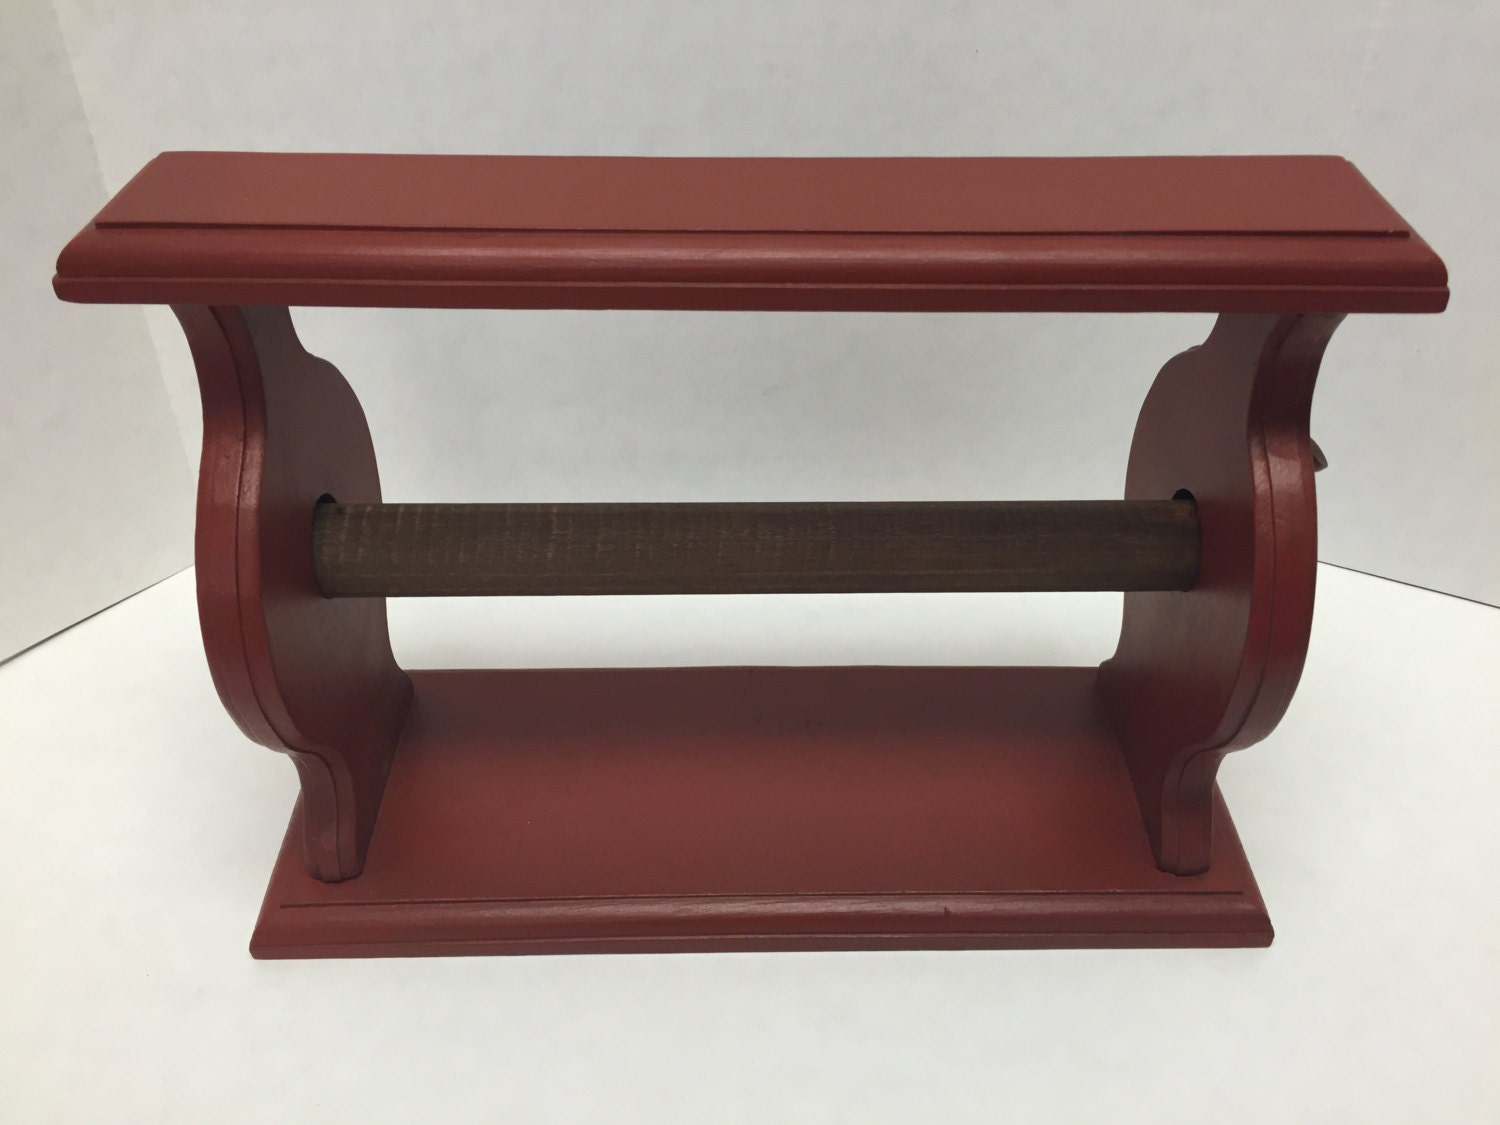 Vintage Wood Wooden Paper Towel Holder Painted Barn Red Aged